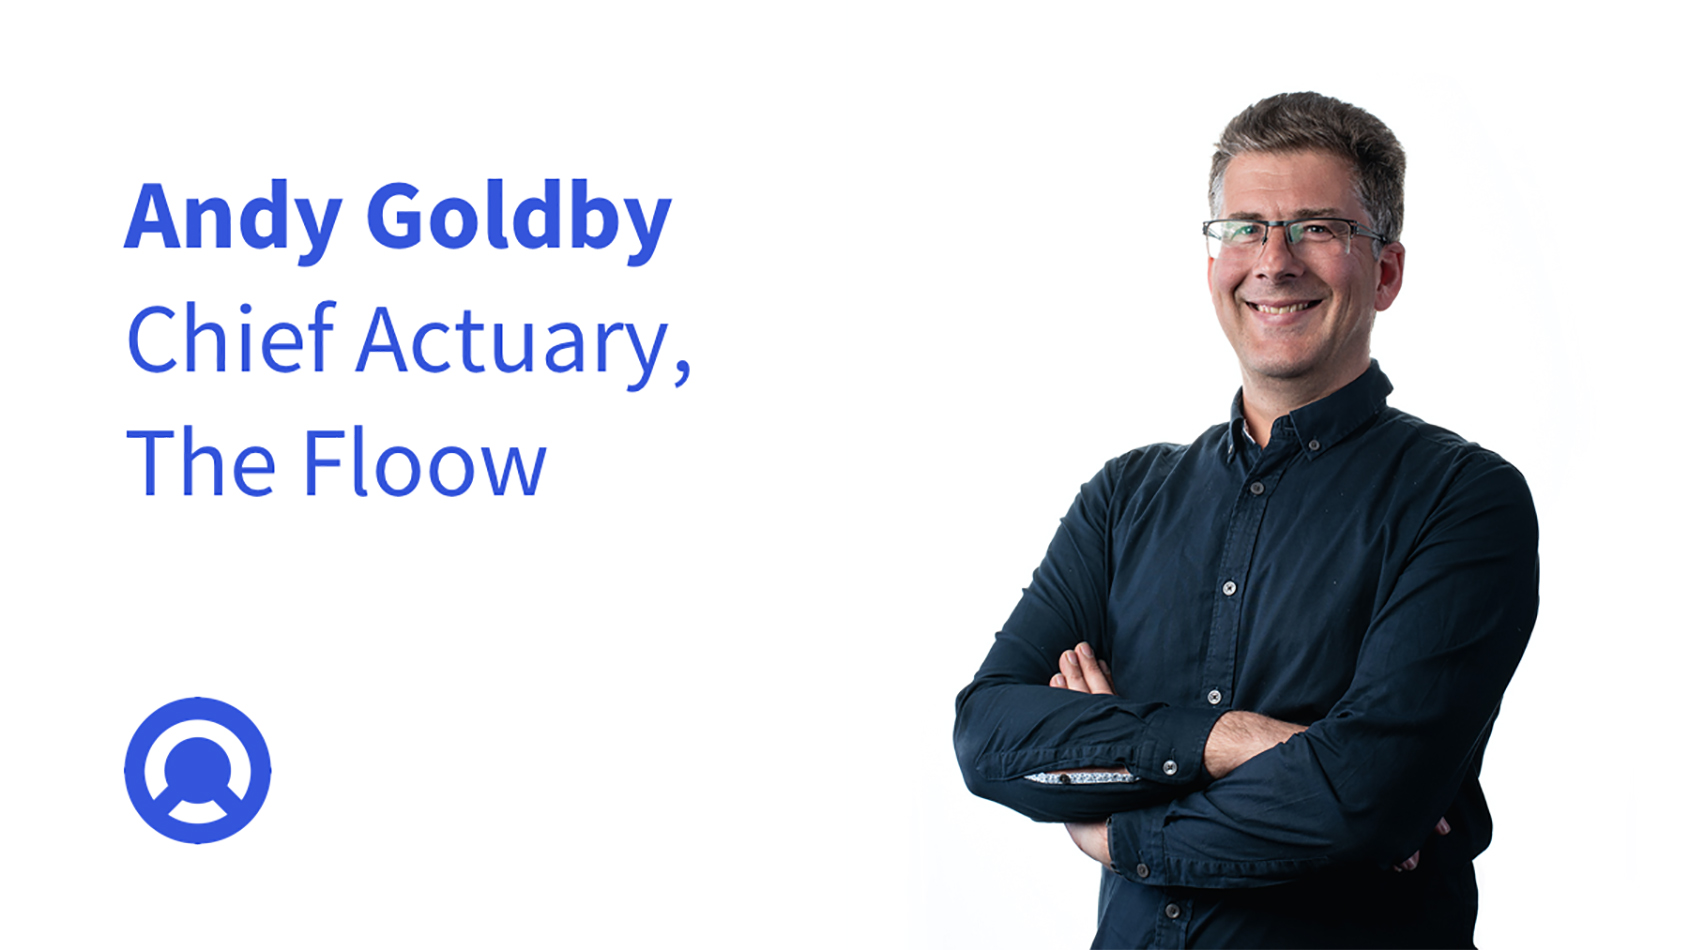 Andy Goldby, Chief Actuary at The Floow Ltd